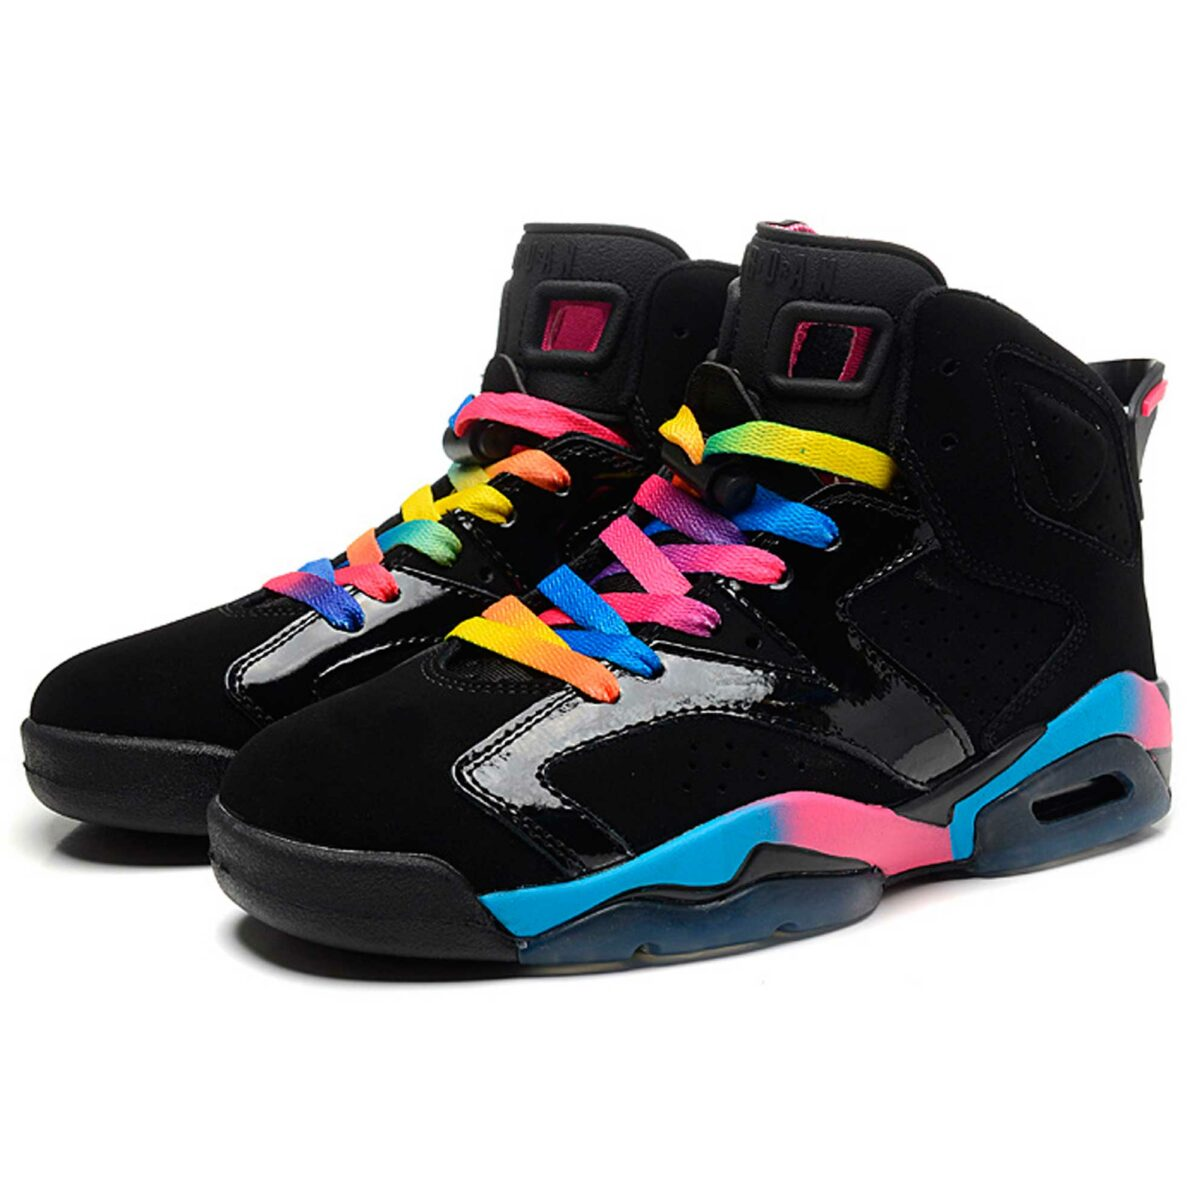 nike air jordan retro 6 GS black pink flash marina blue 543390-050 купить